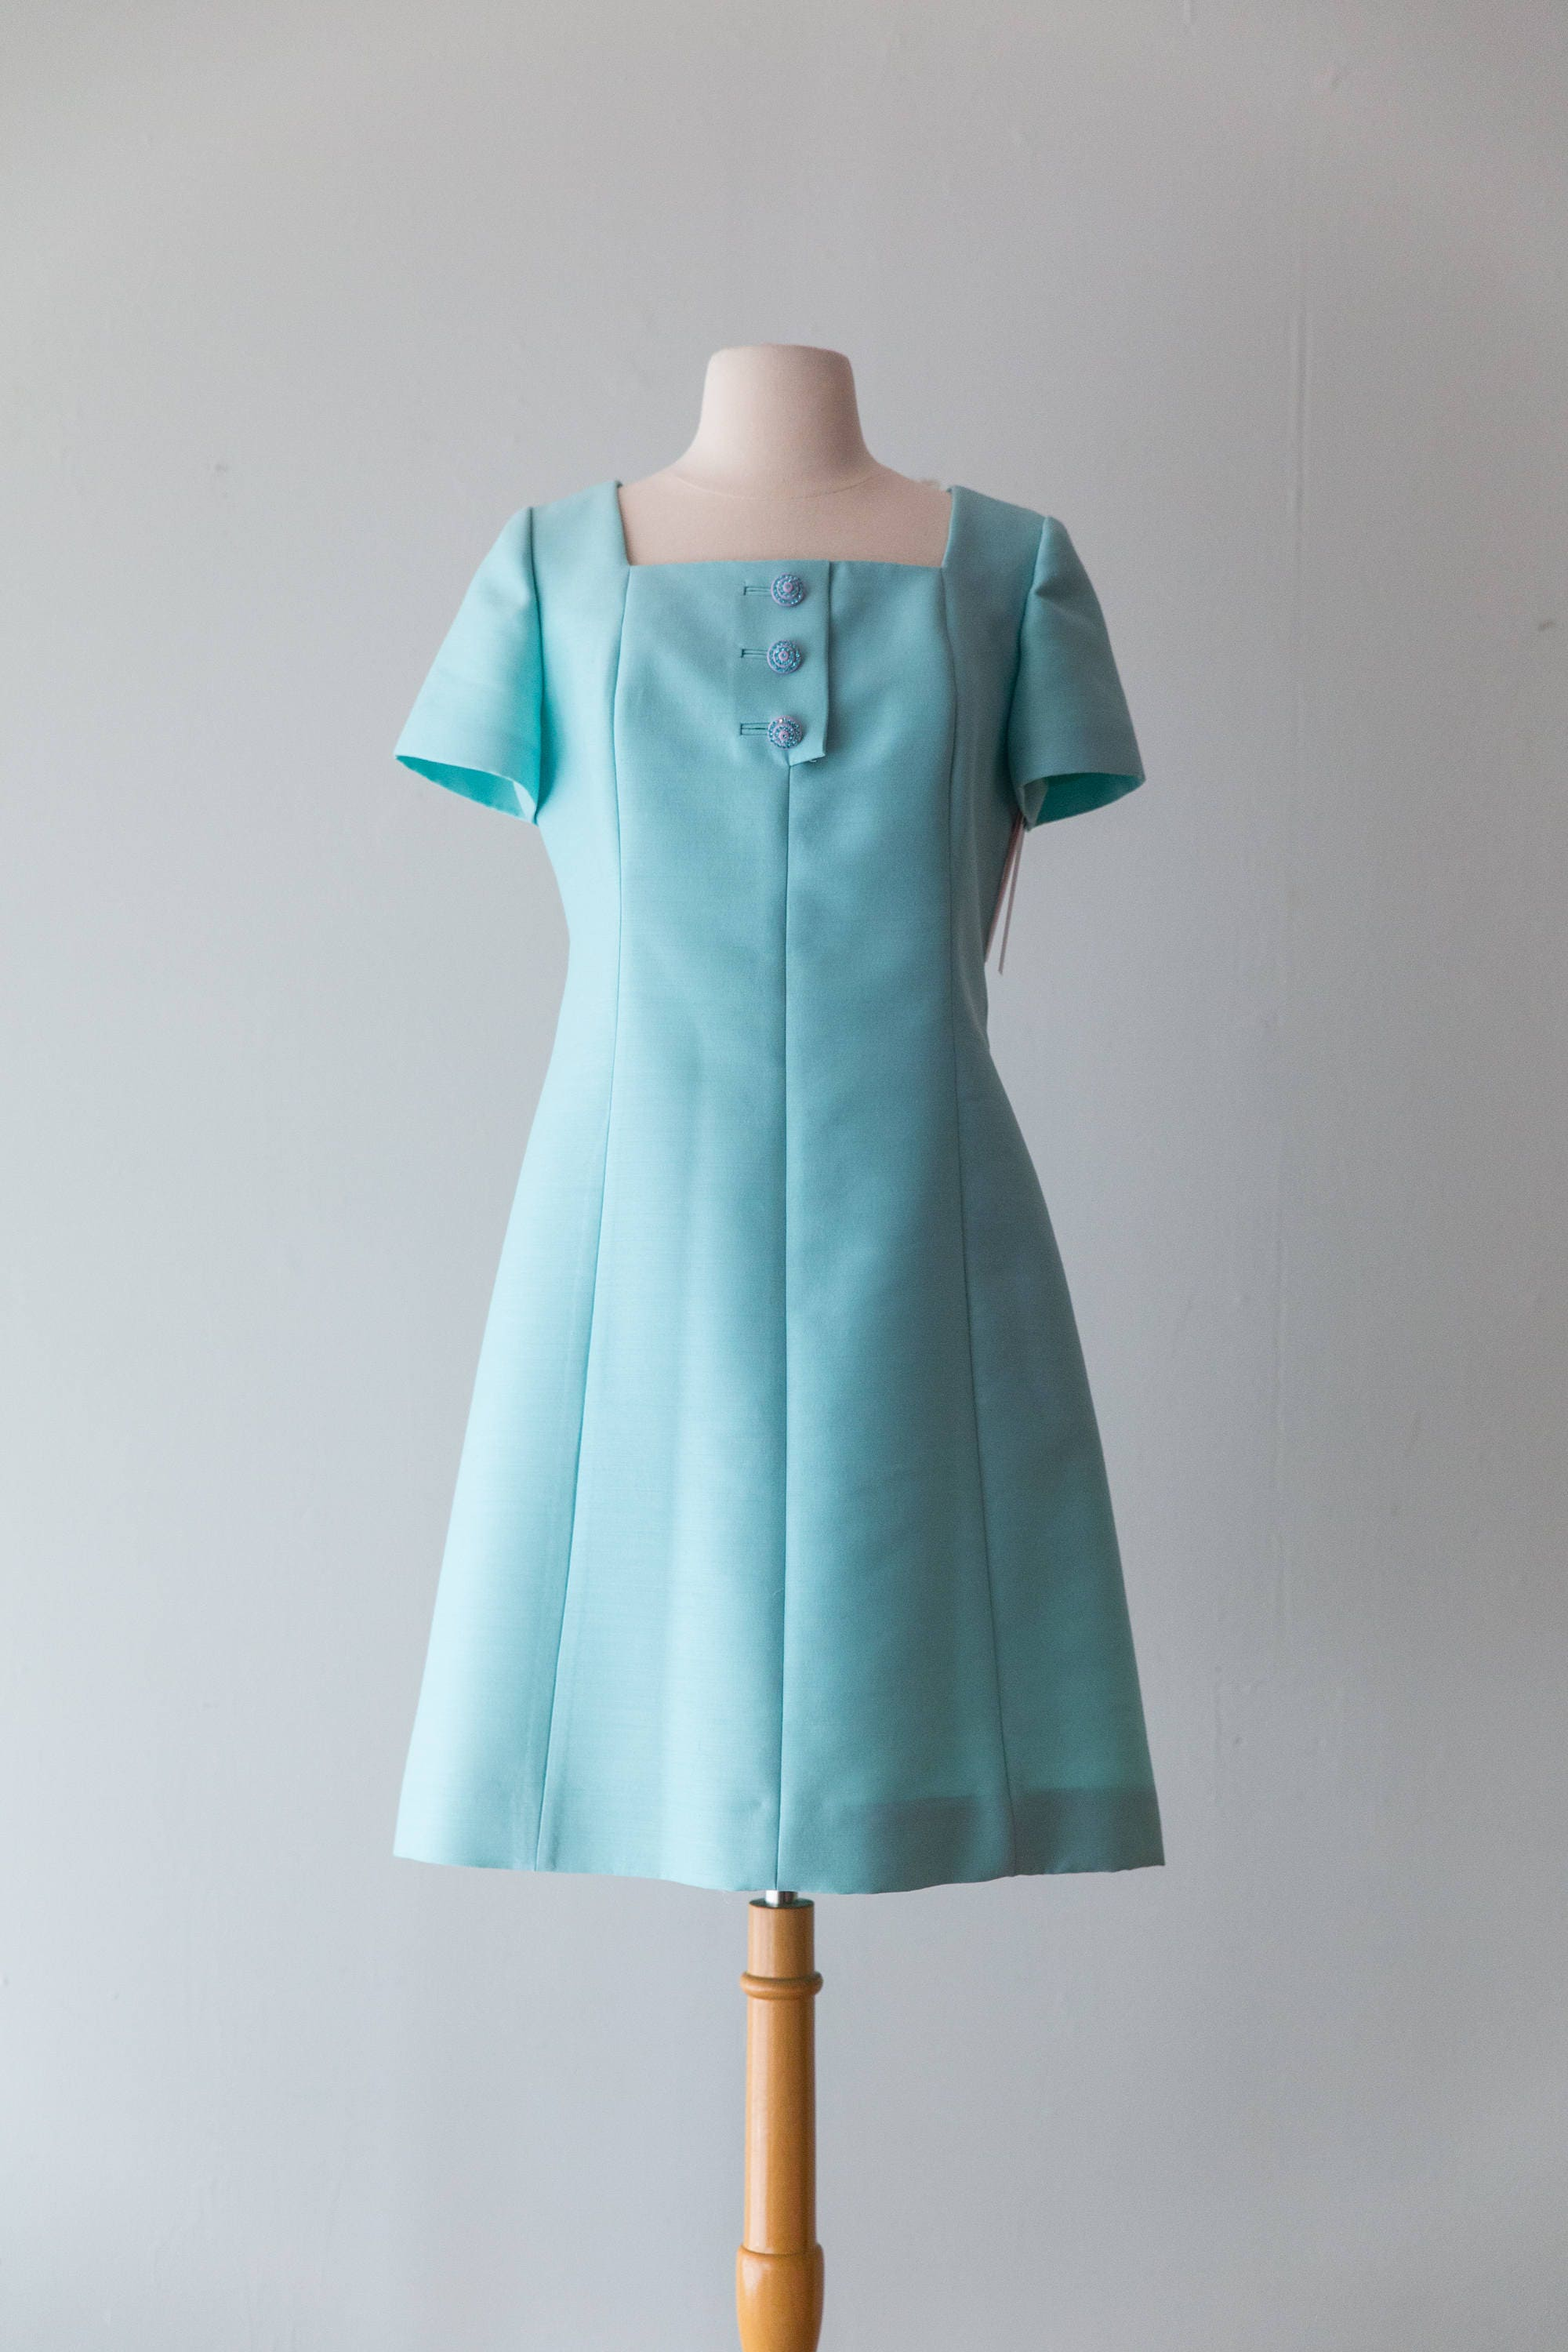 Vintage 1960s Dress 60s Structured Silk Cocktail Dress With